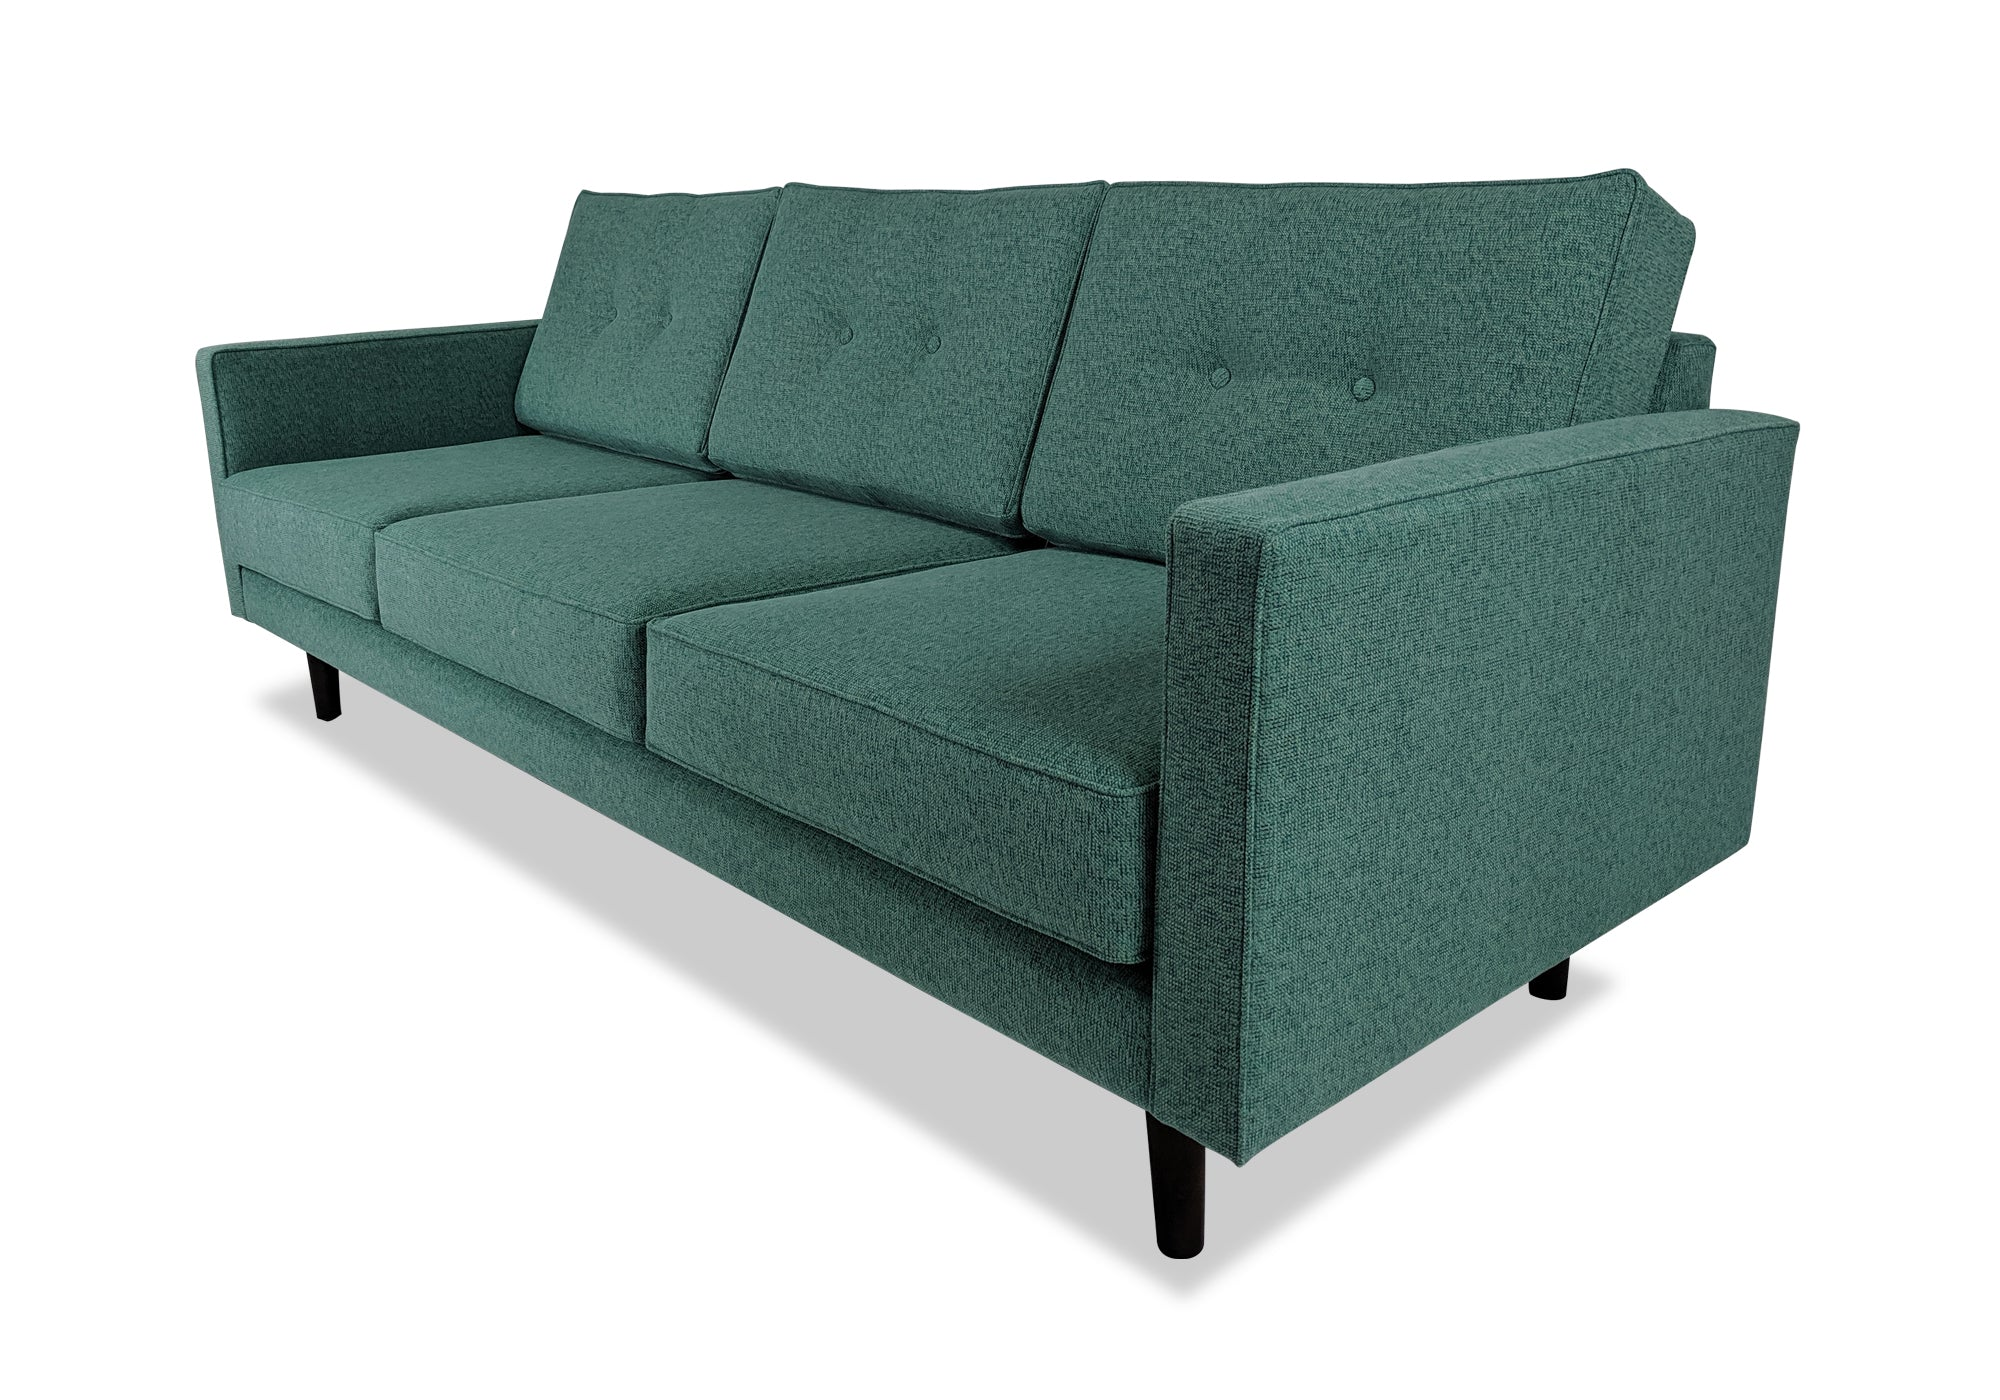 Strange Royston Sofa Locally Made In Perth Domain Gallery Caraccident5 Cool Chair Designs And Ideas Caraccident5Info